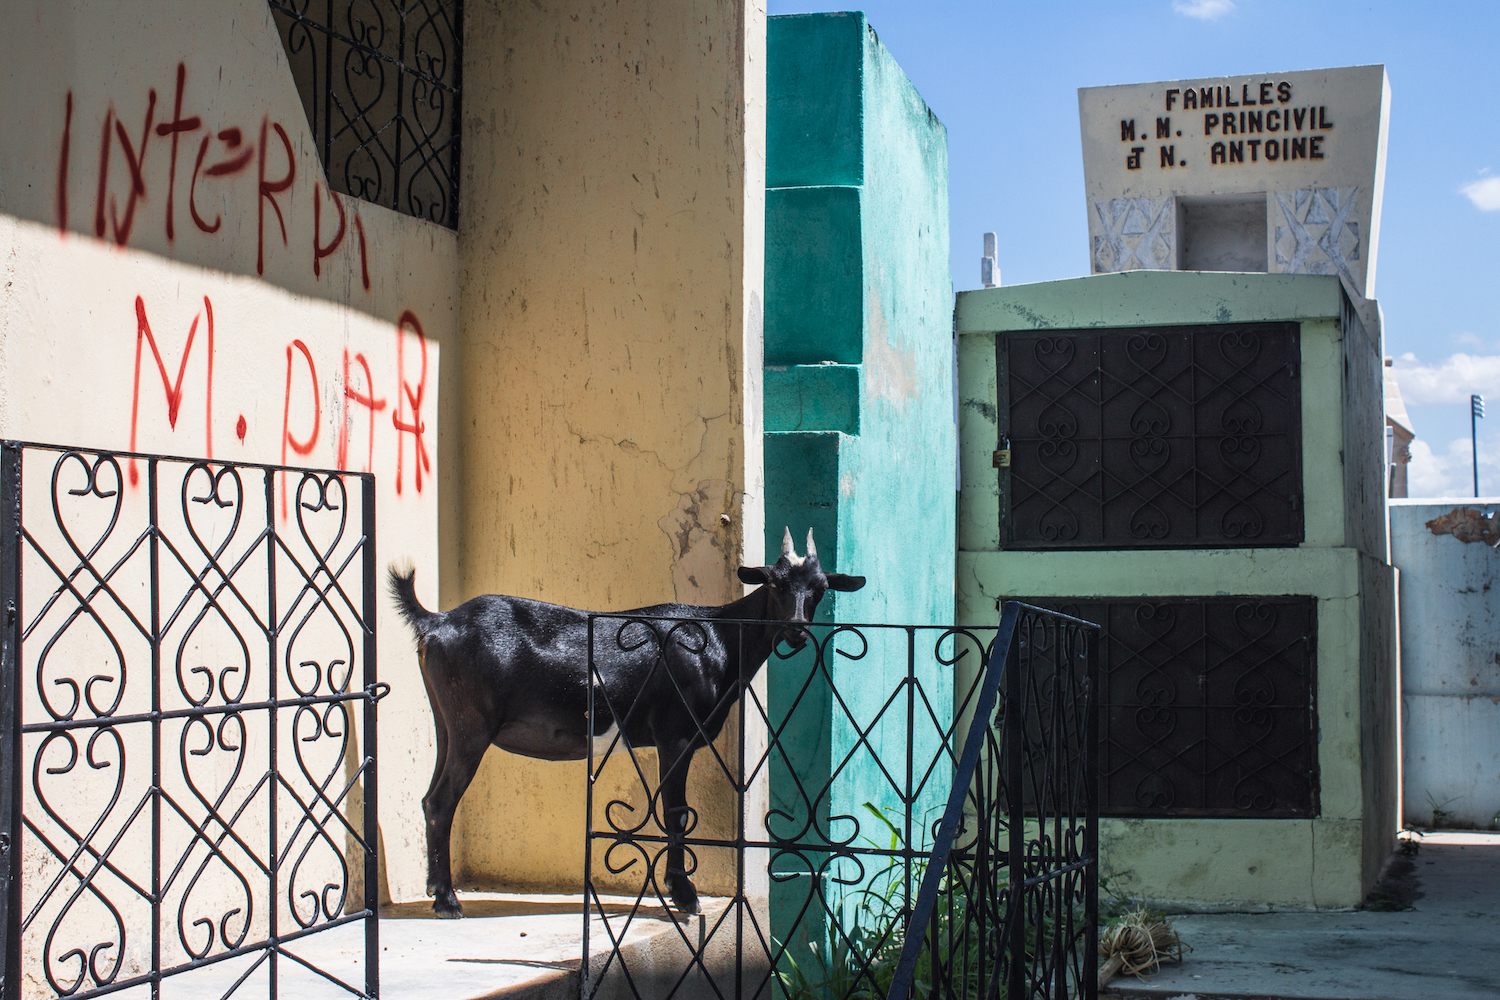 This Haitian cemetery was overrun with goats, graffiti and decorative ironwork. © Darmon Richter http://www.thebohemianblog.com/2015/04/haitian-vodou-port-au-prince.html